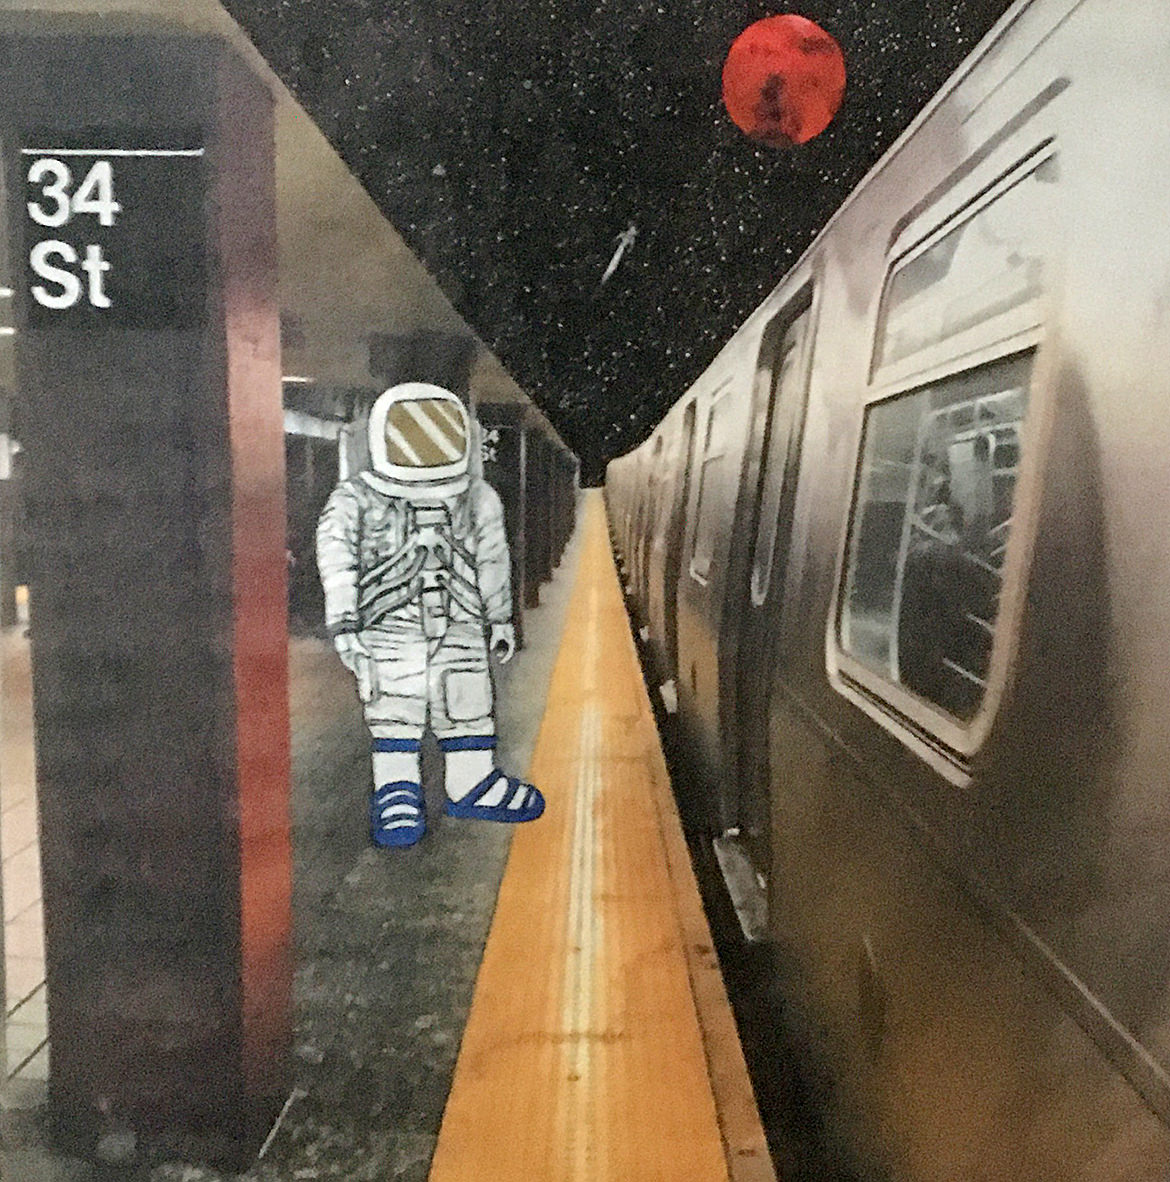 A sticker illustration of an astronaut stands on the 34th Street subway platform